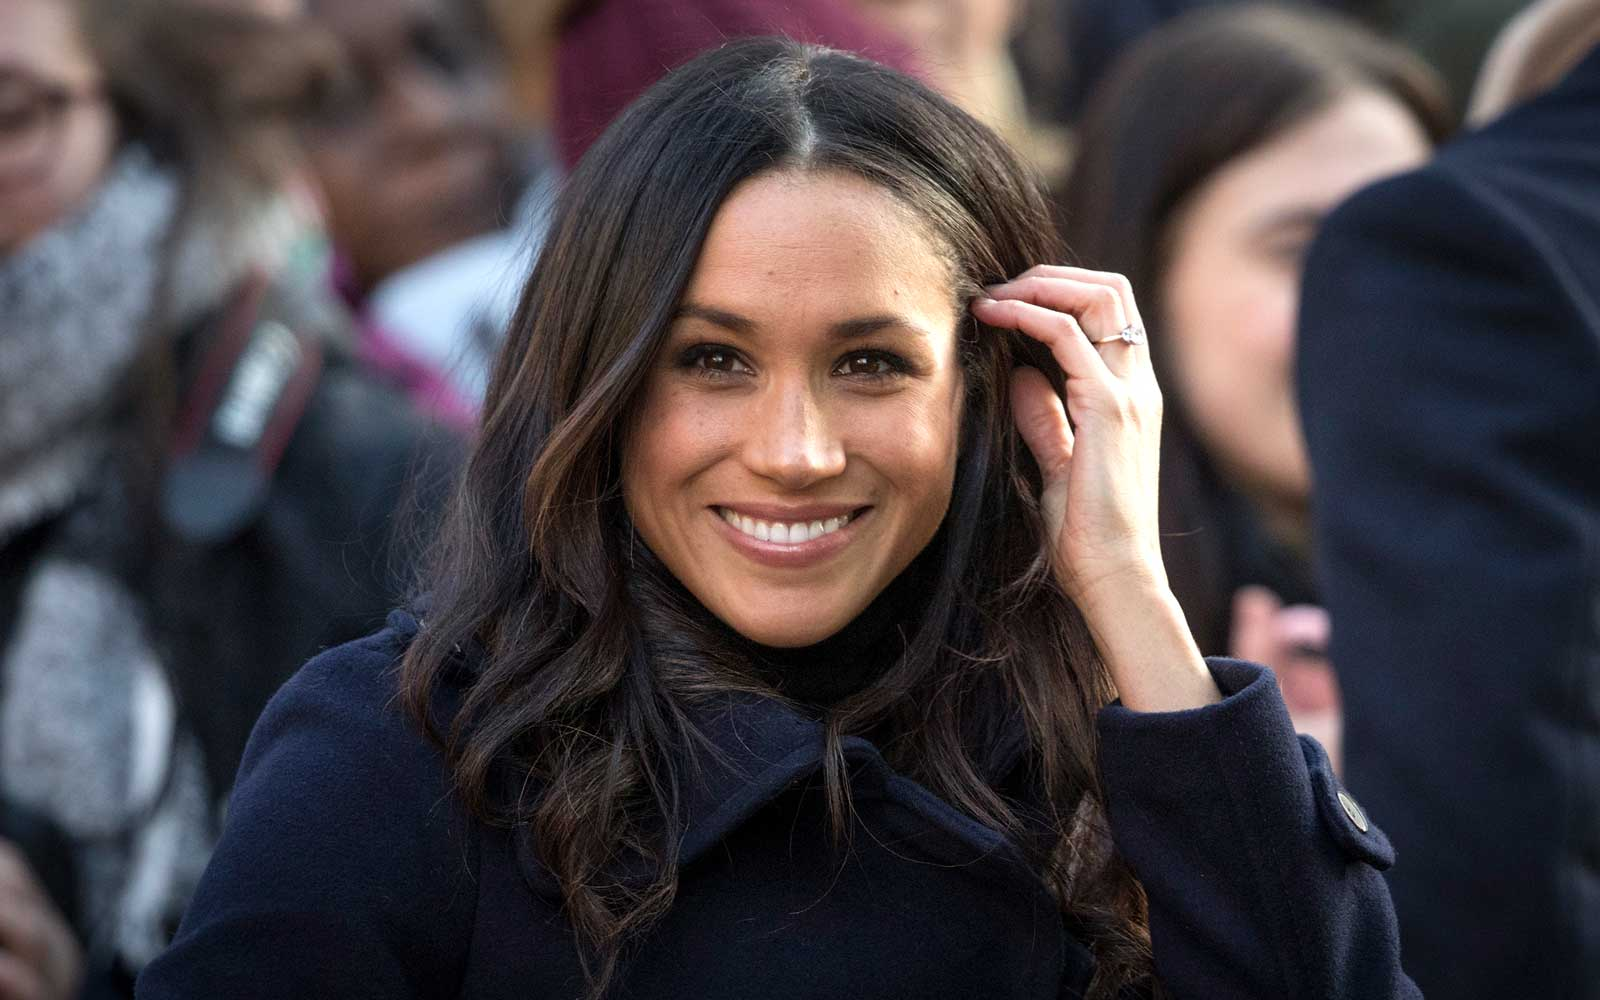 Meghan Markle Shares the One Piece of Advice That Helped Her Achieve Her Dreams